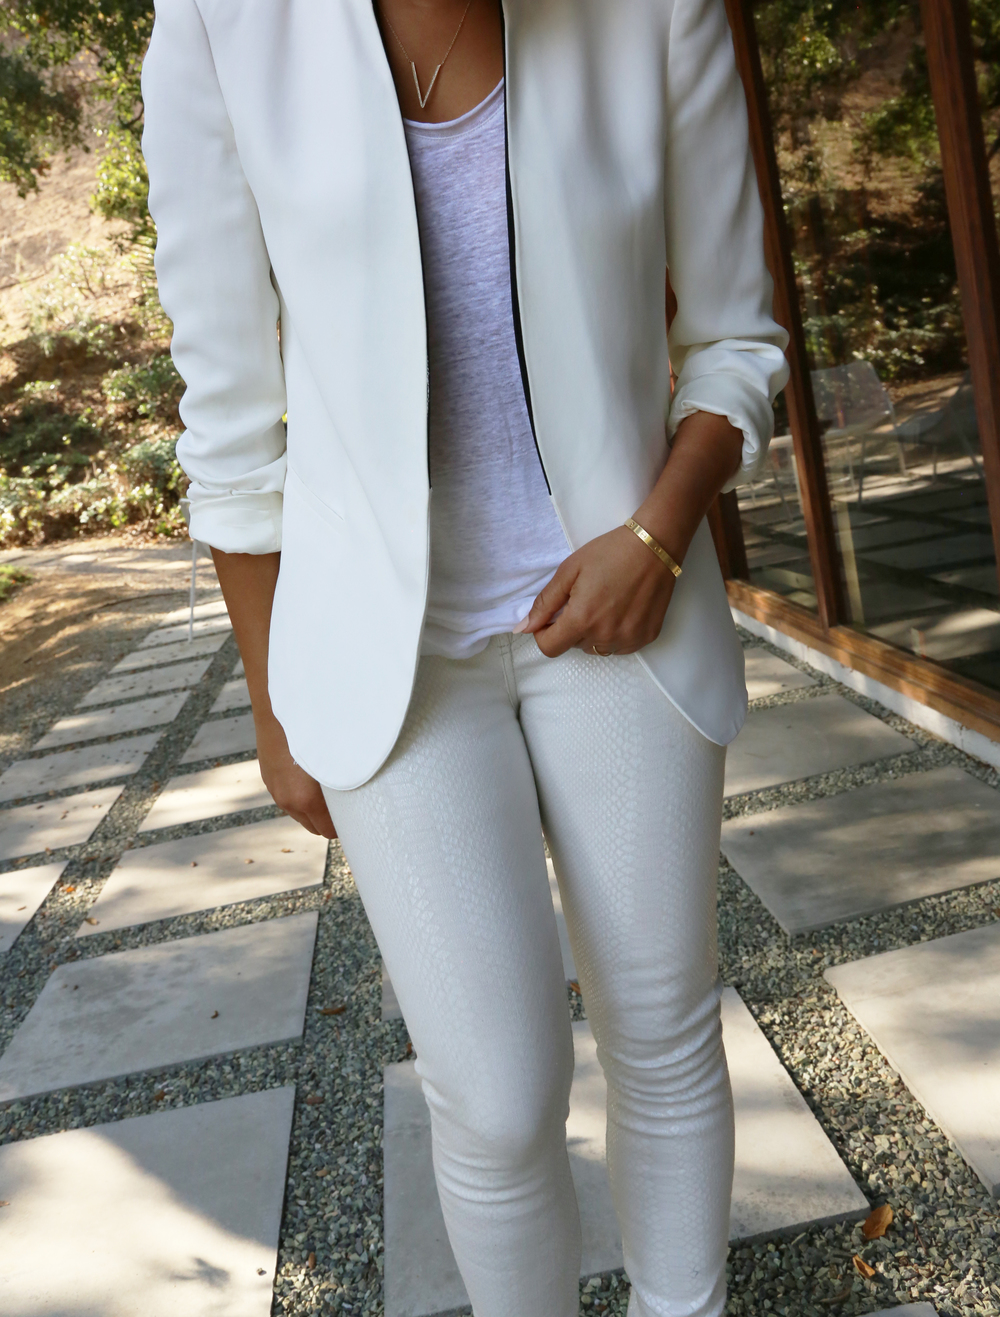 zara-blazer-white-winter-7-for-mankind-jeans-alexander-wang-boots.jpg